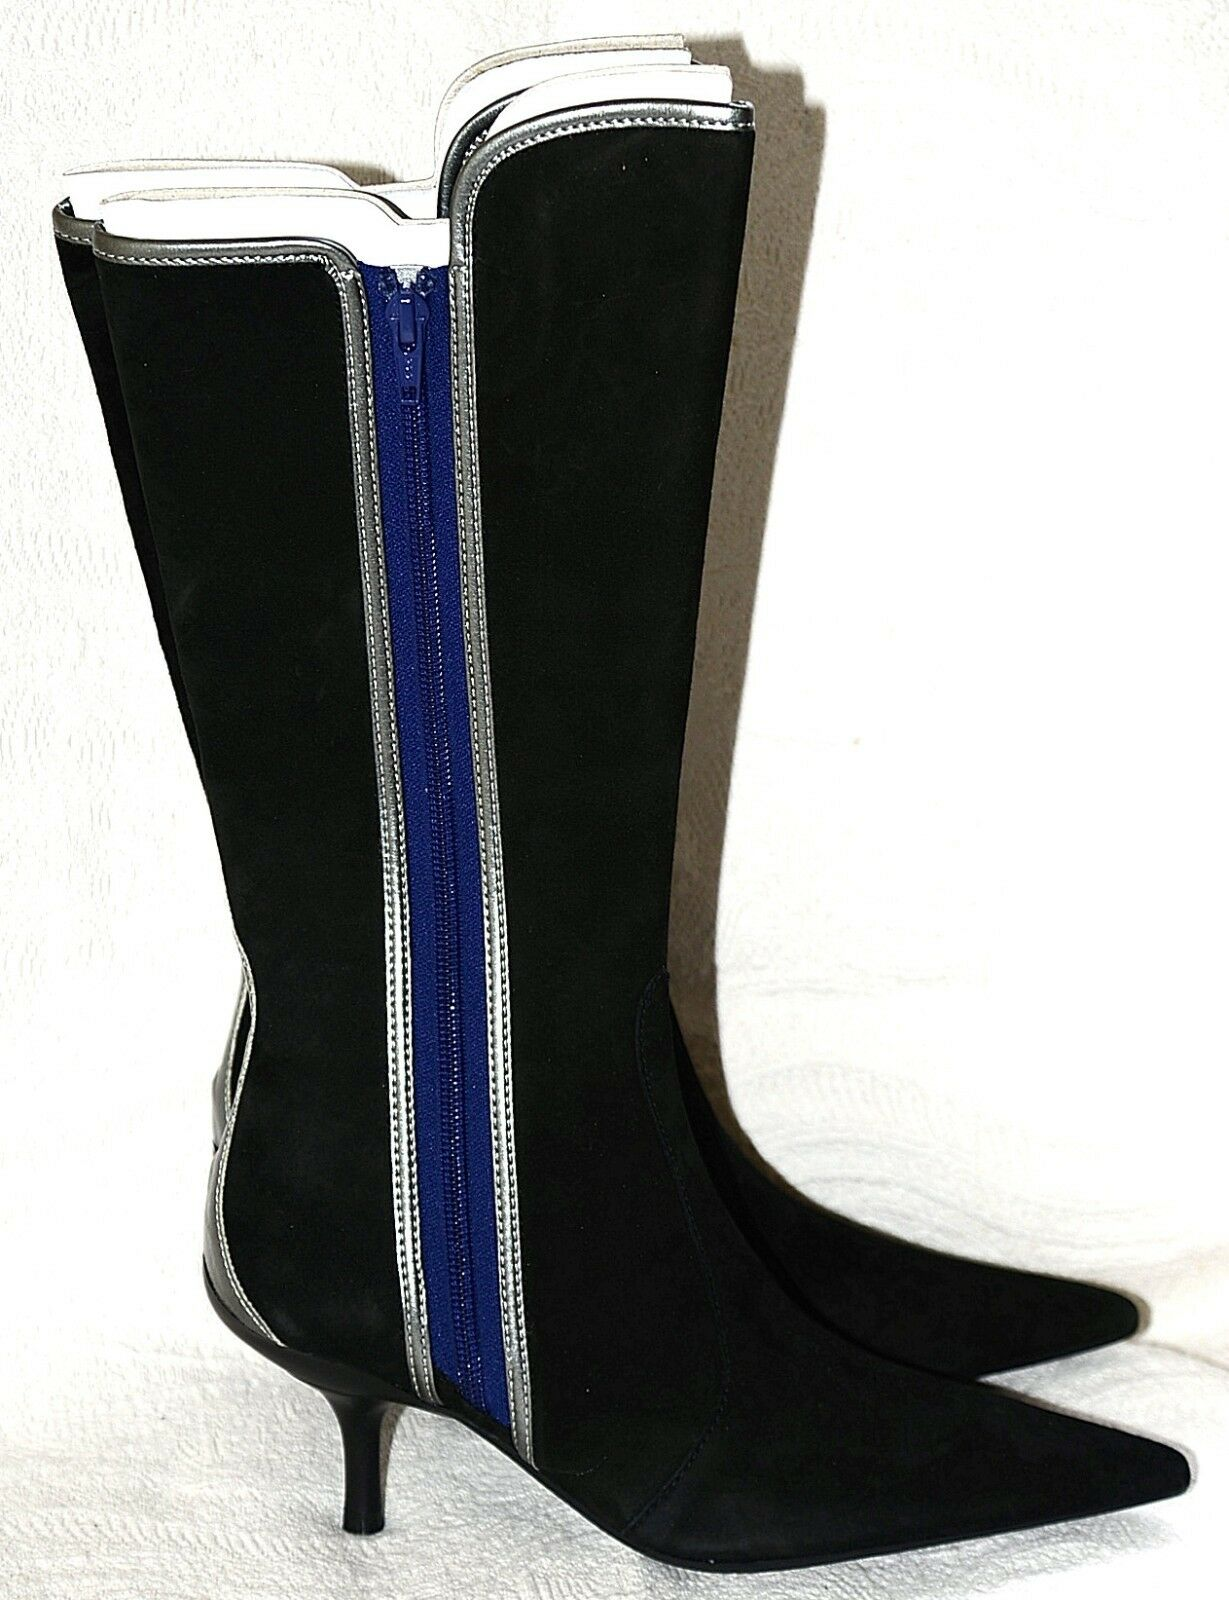 New Fornarina Suede pointed Boots with bluee and silver accents